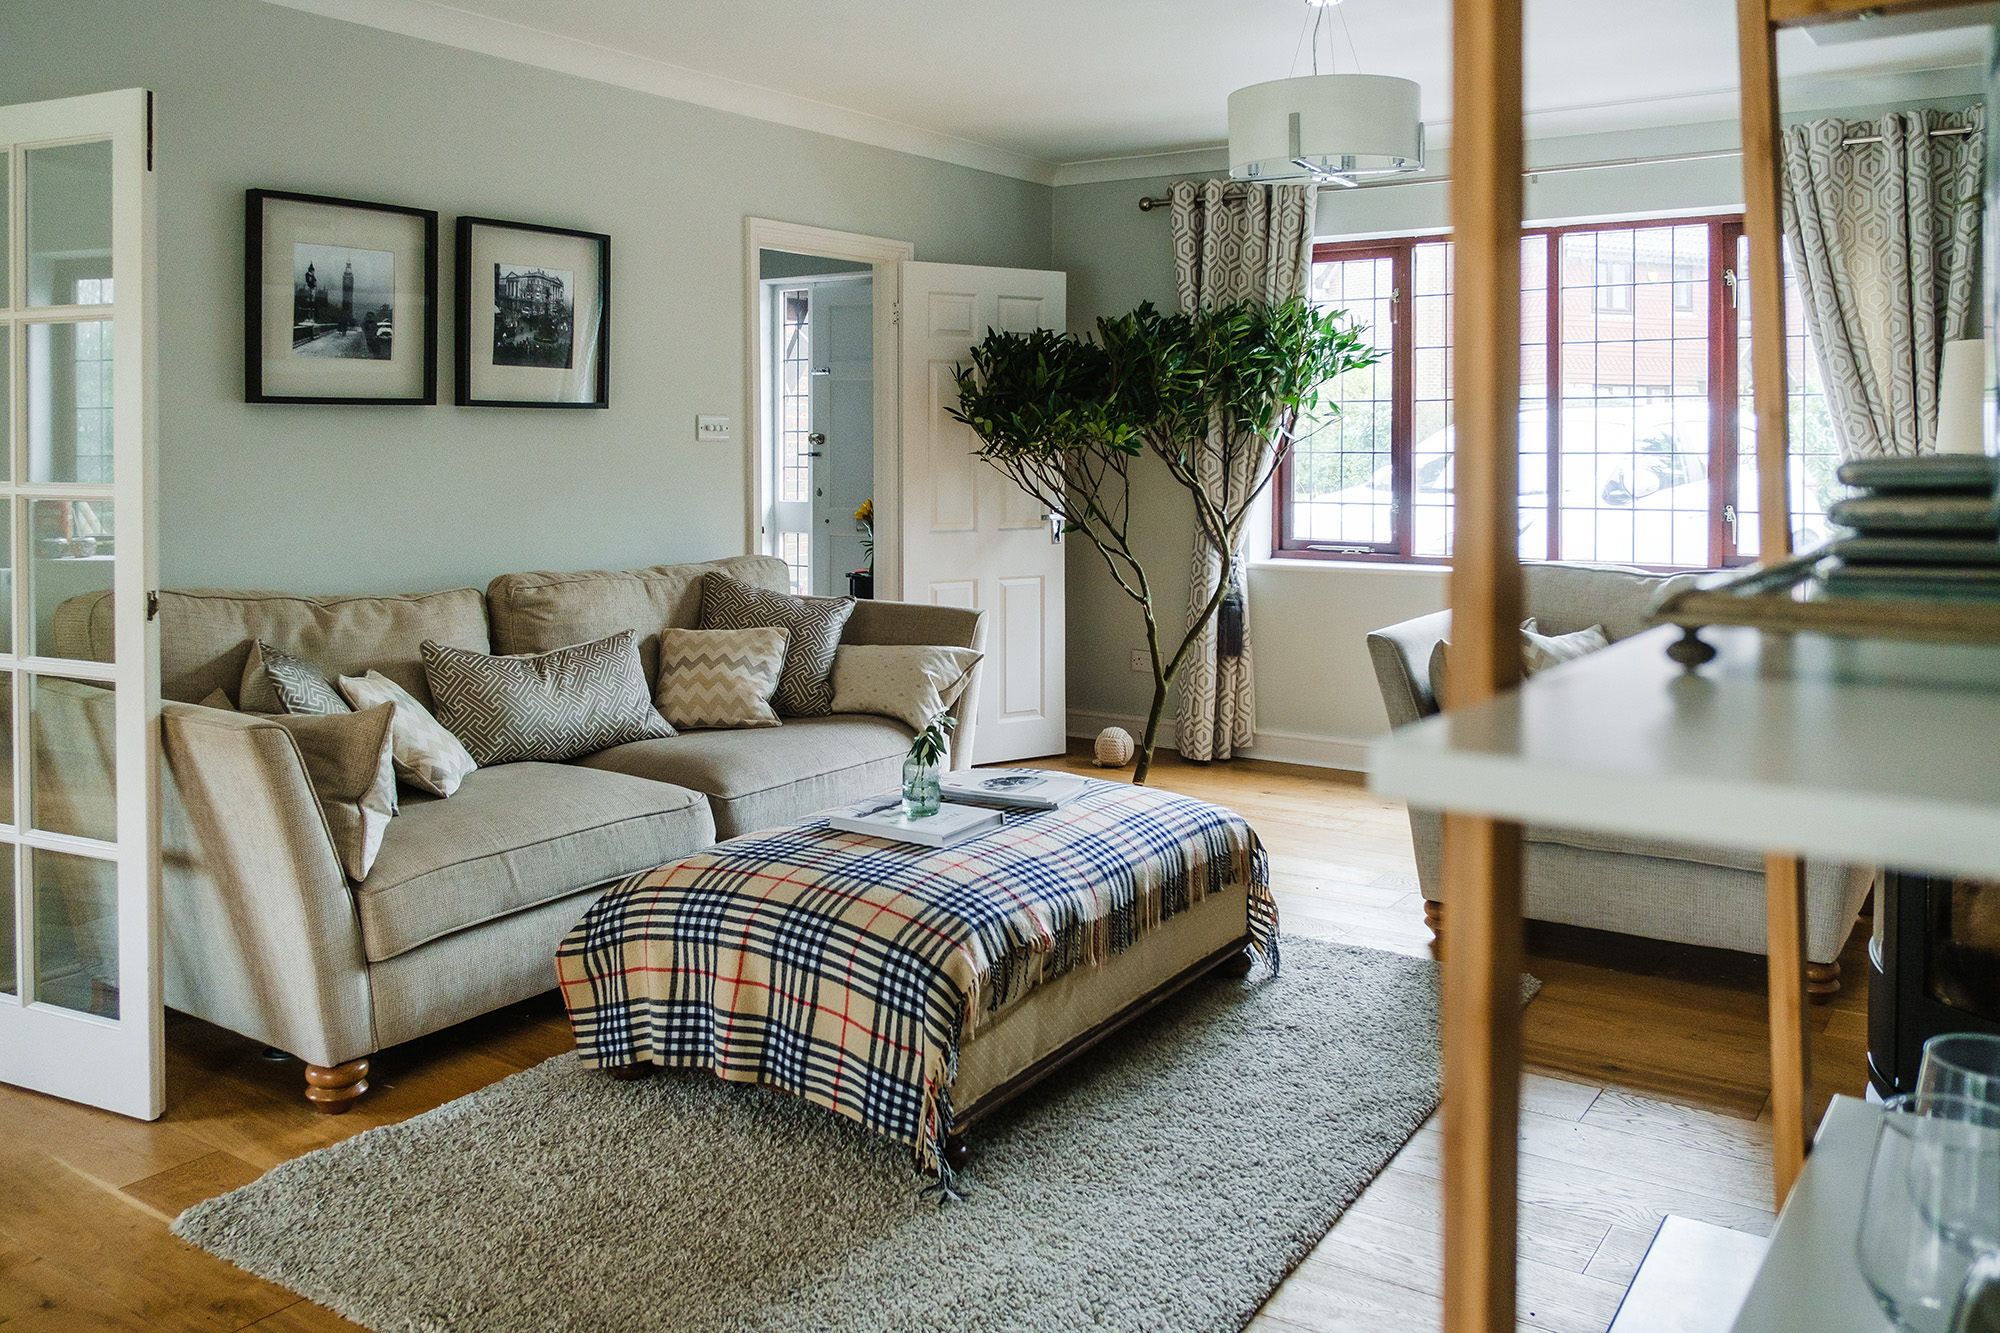 front room wide angle view interior design